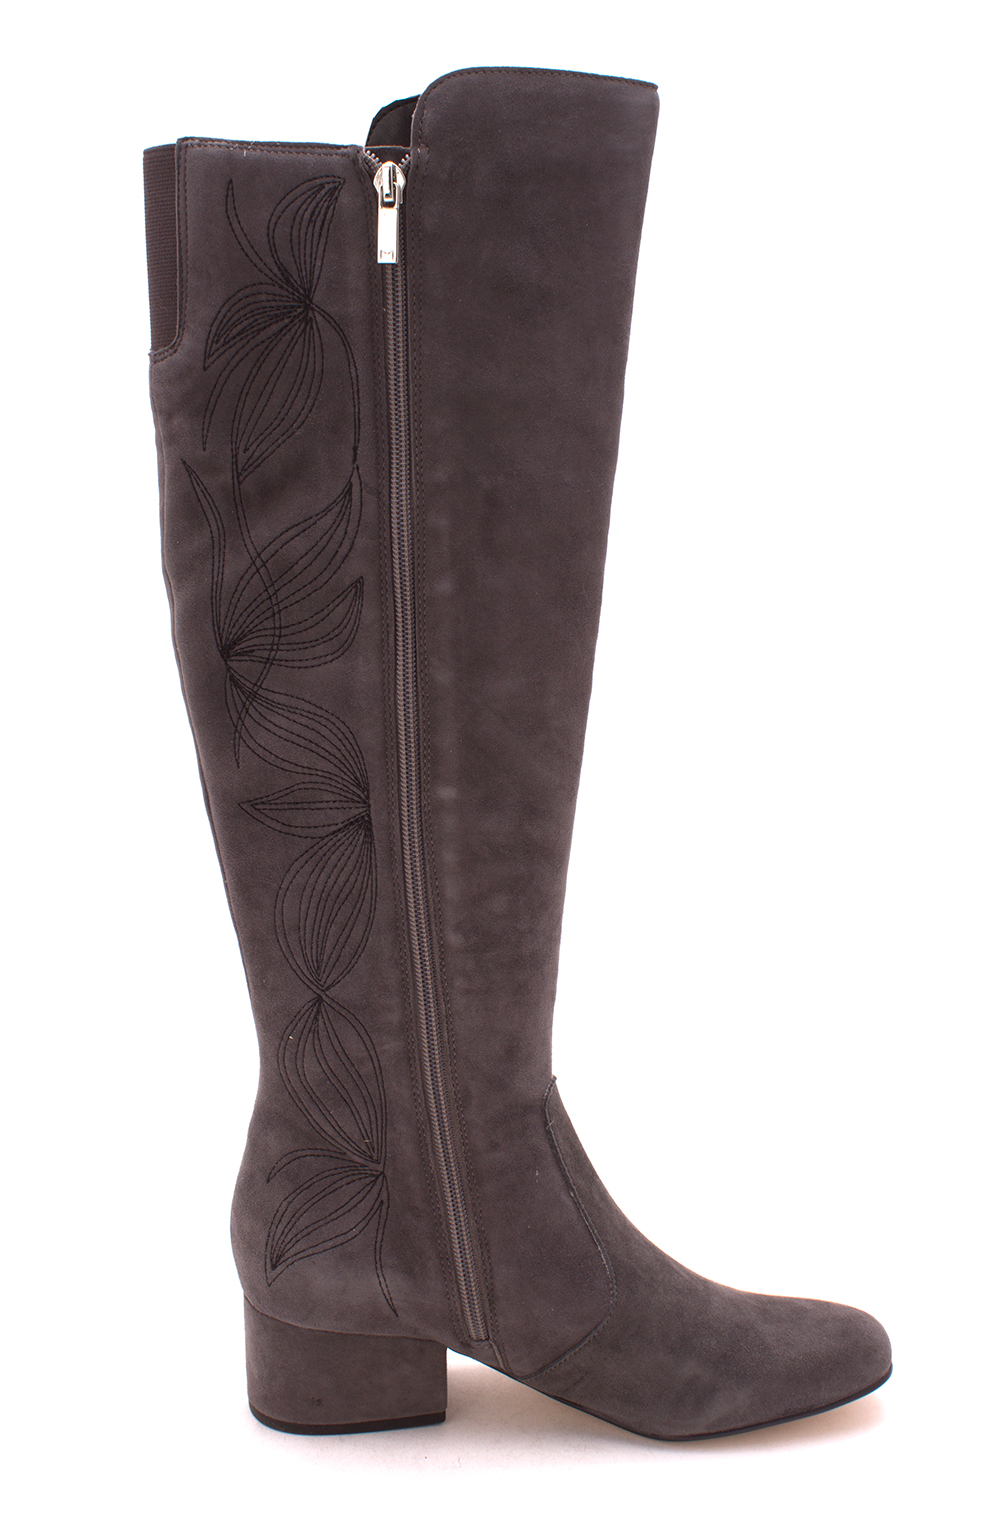 6a5c8f86795 Marc Fisher Womens Tawanna Almond Toe Knee High Fashion Boots